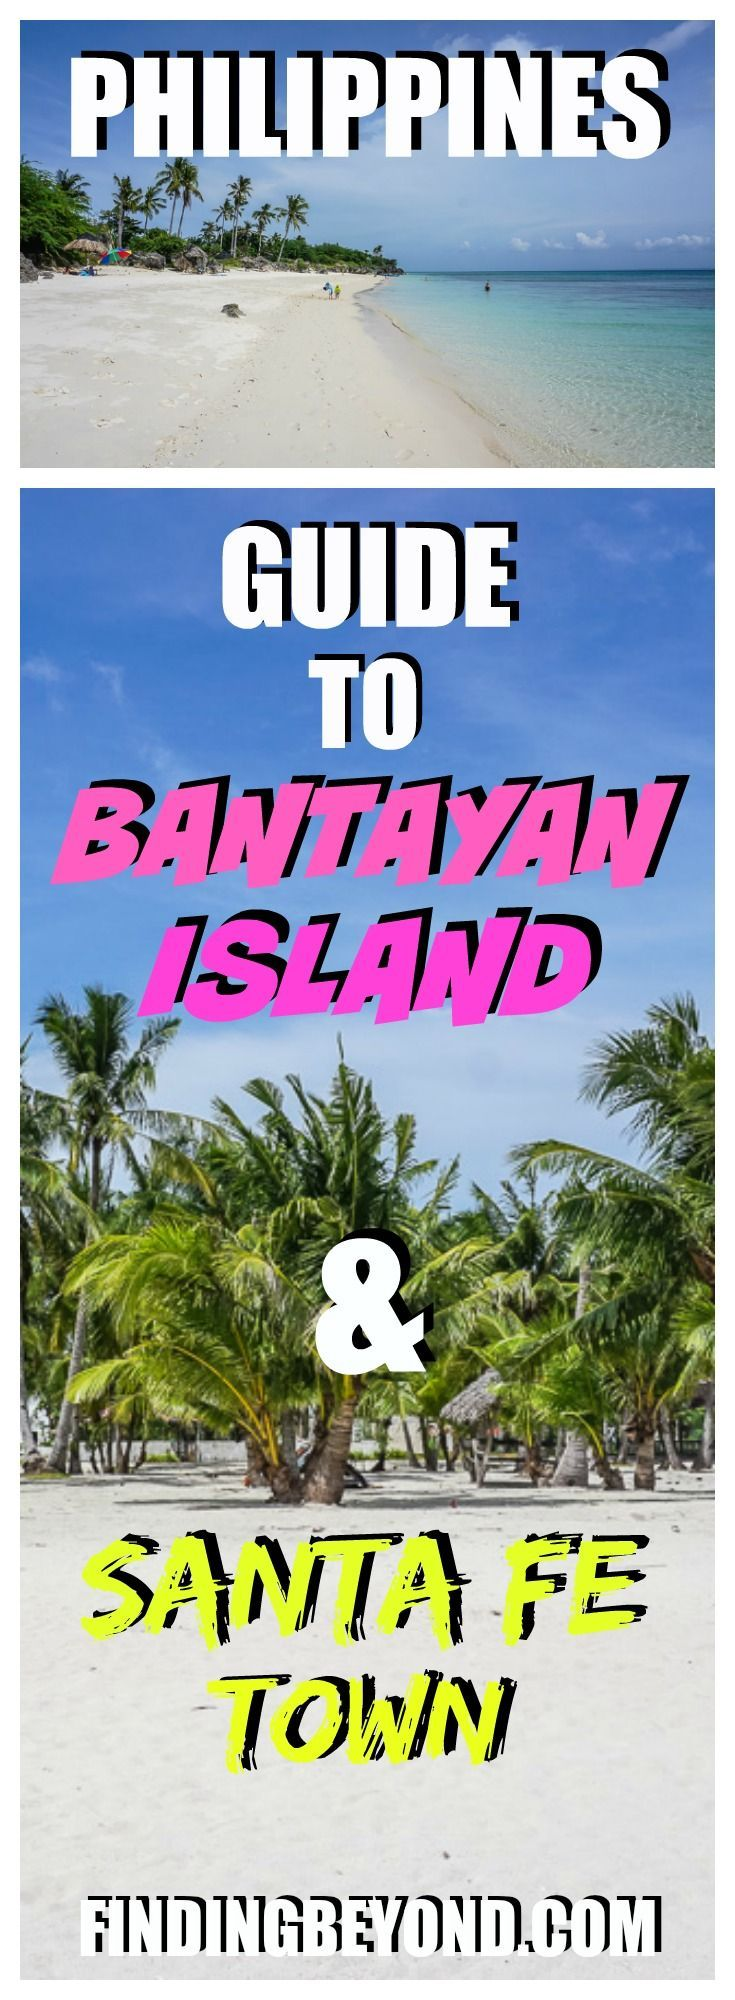 Bantayan Island, the perfect Philippine paradise? Read our Bantayan Island guide and Santa Fe information to help build your Bantayan island itinerary.